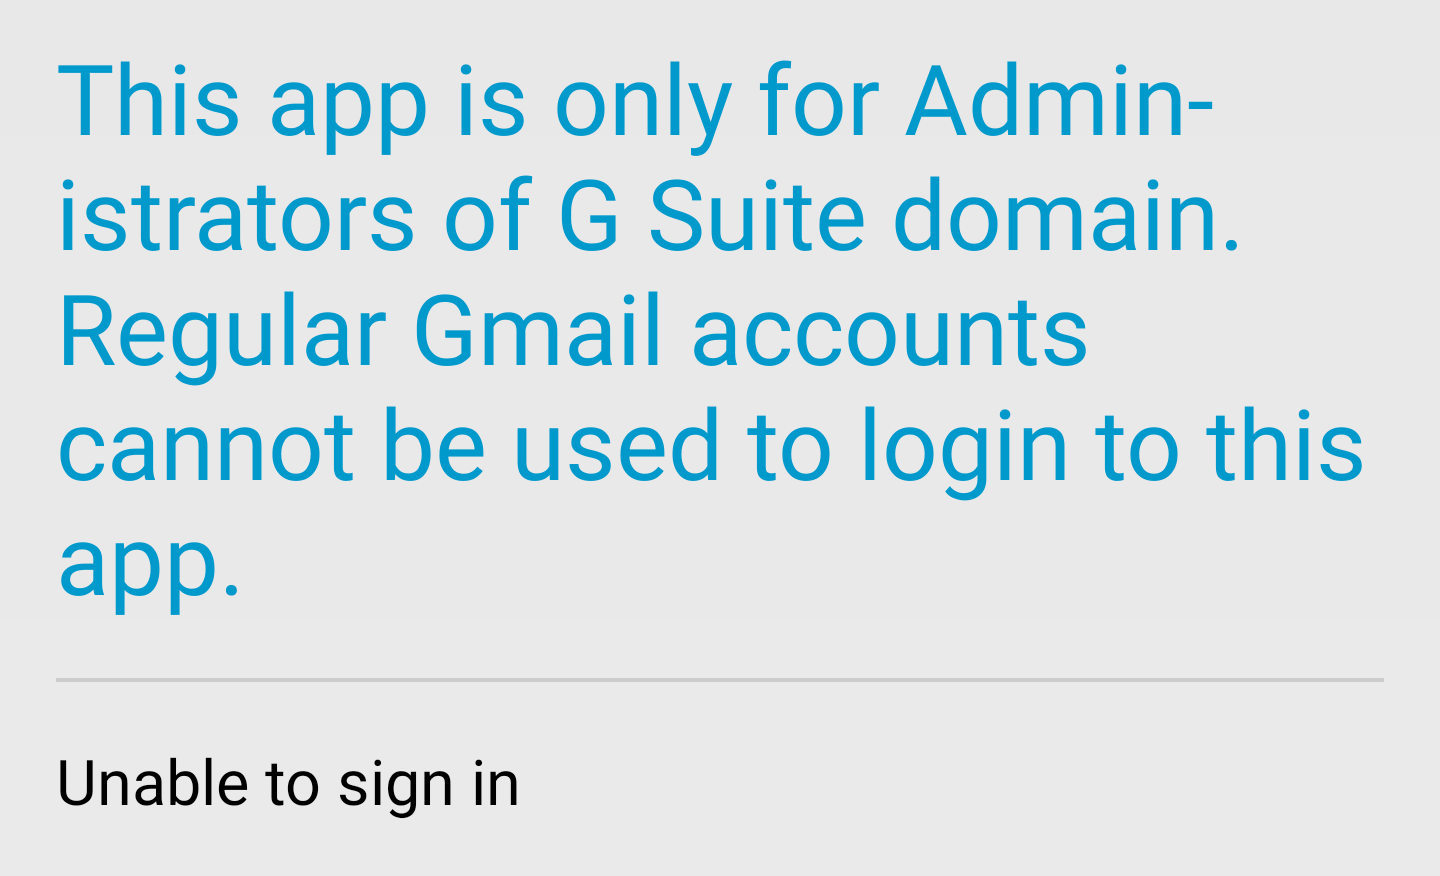 The Google Admin app is completely broken for many right now, and has been for weeks